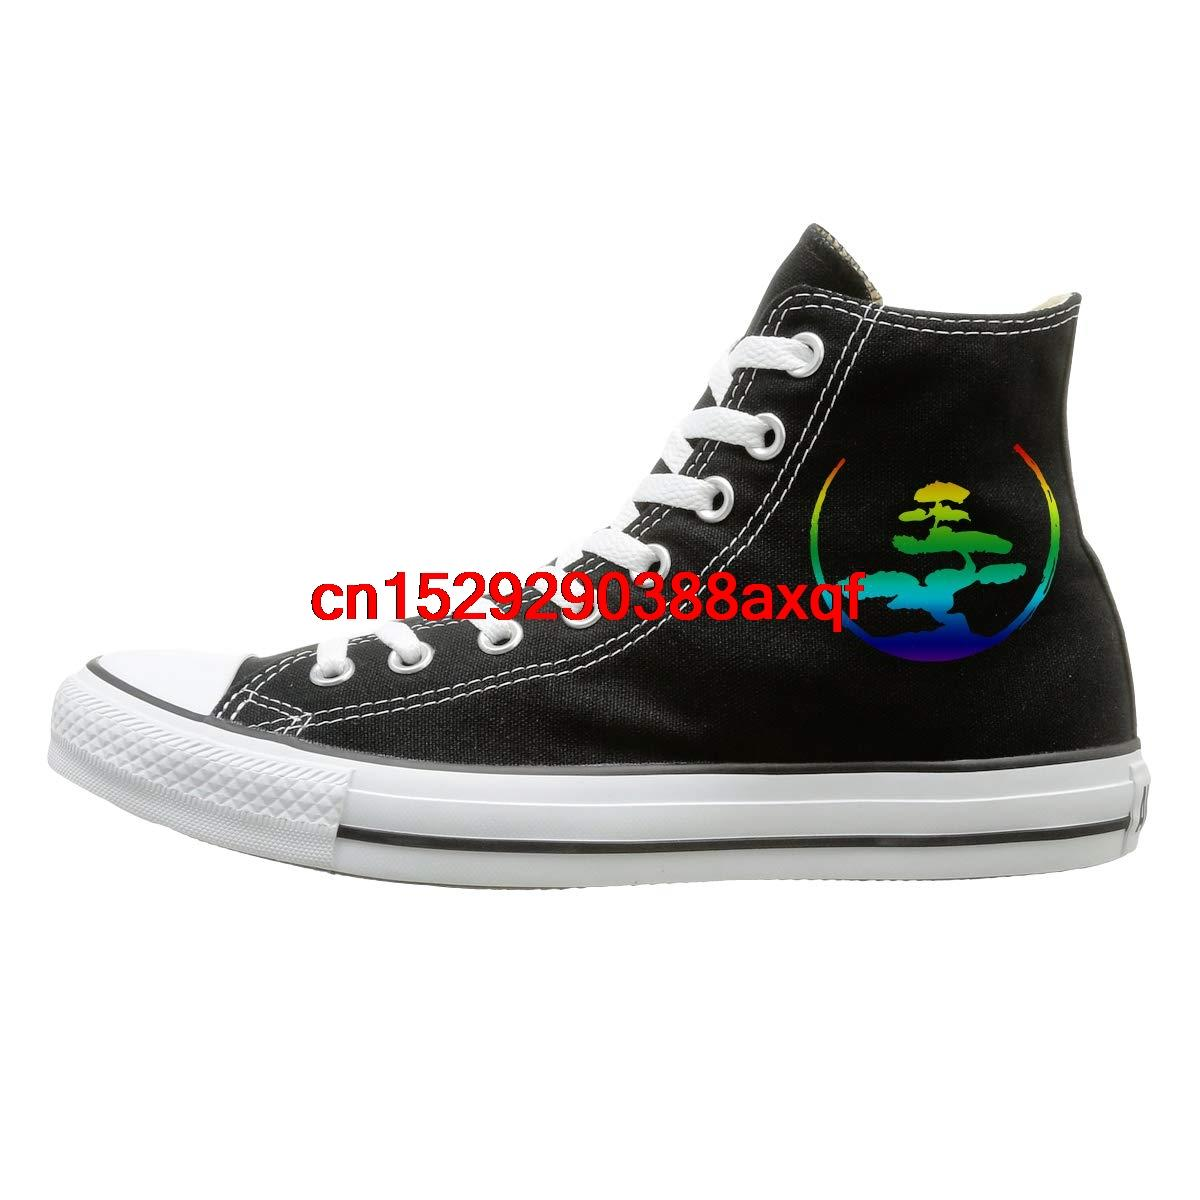 Canvas Shoes Bonsai Tree Japanese Calligraphy Circle Zen Classics High-Top Lace Ups Sport Sneakers For Unisex